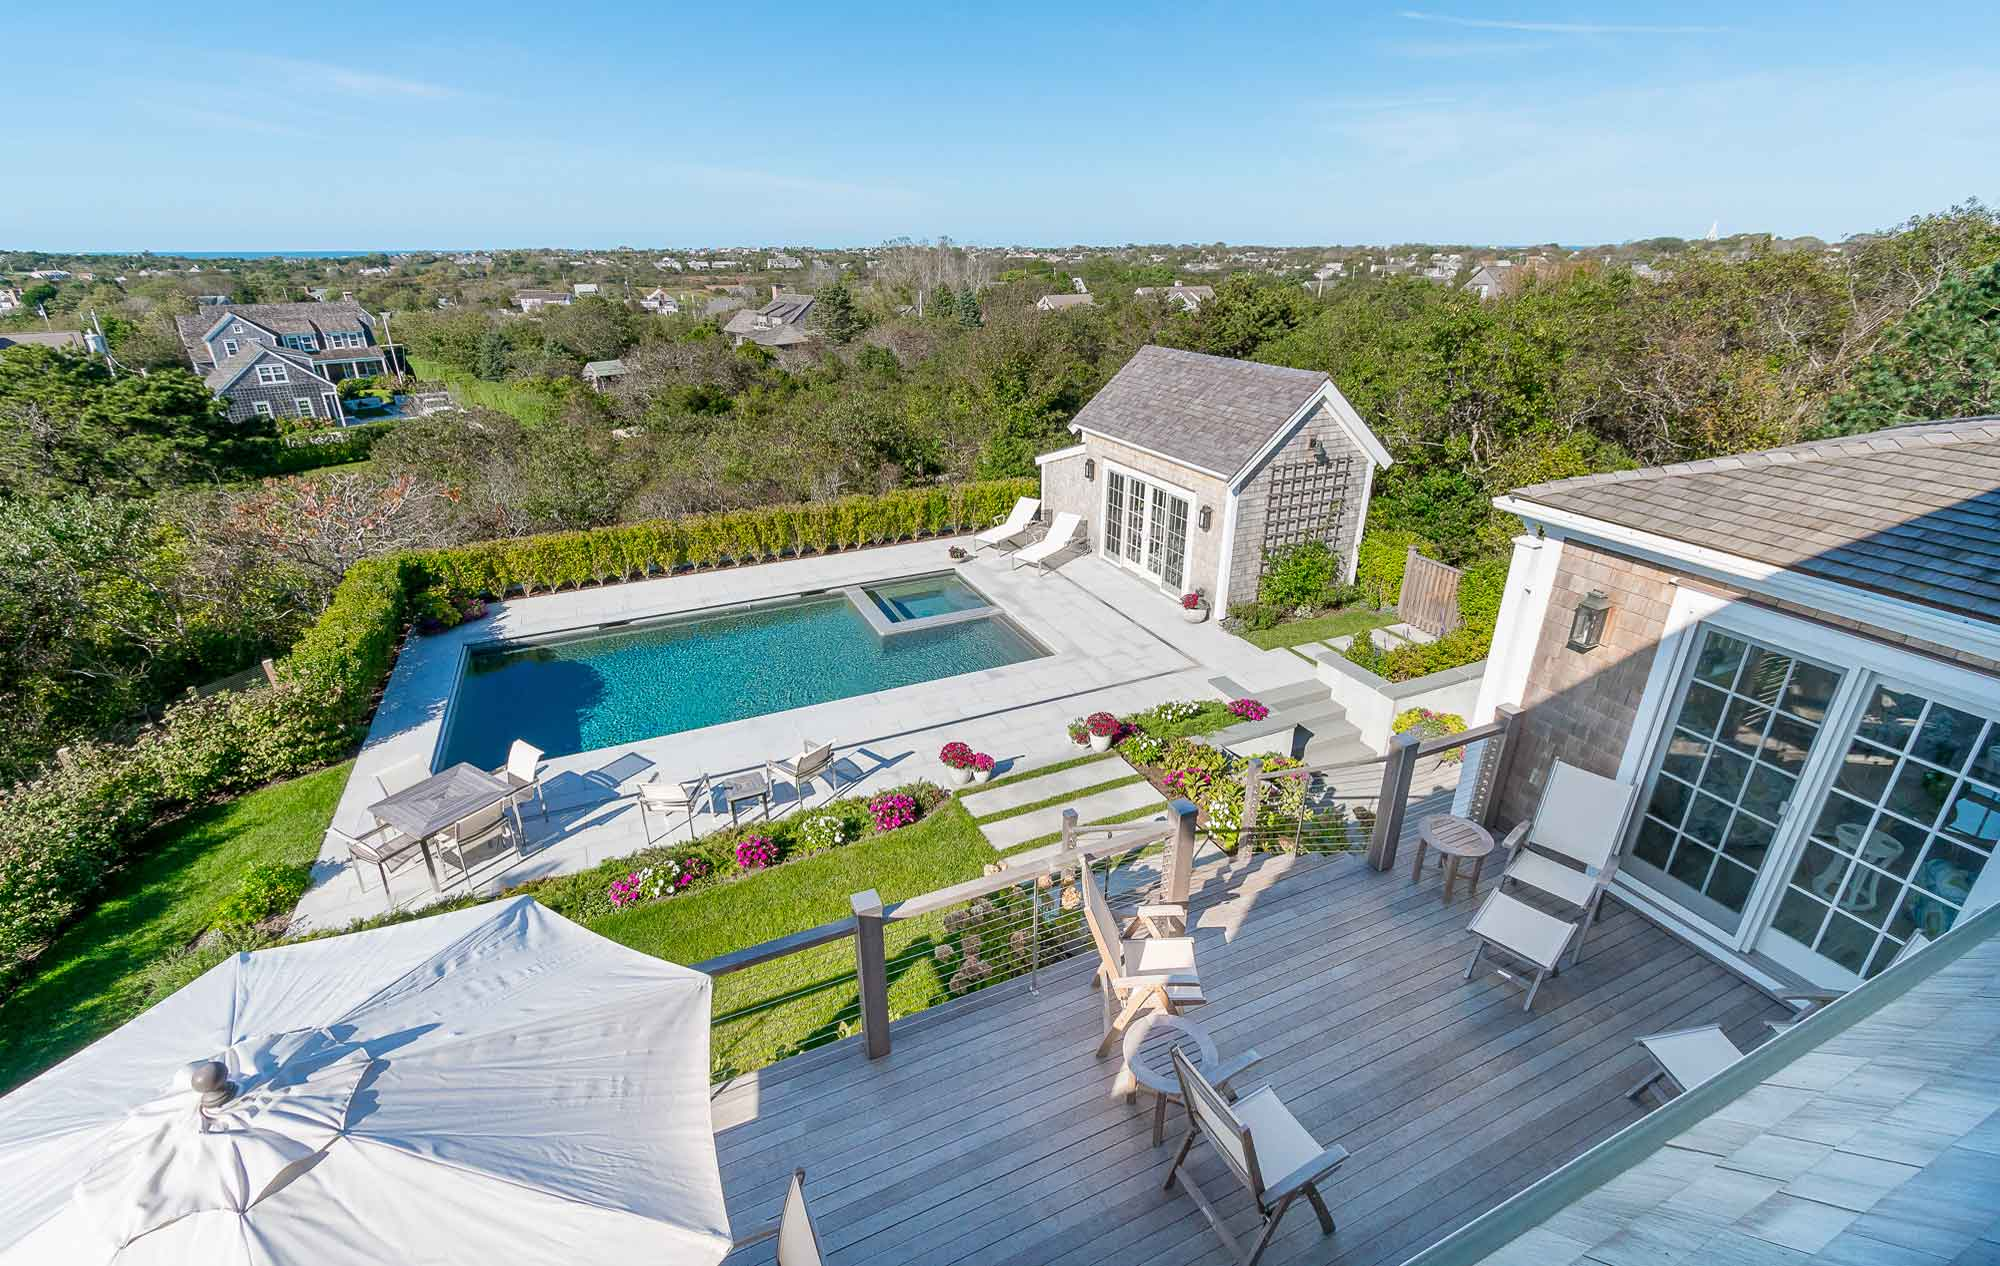 Carefully rebuilt in 2015, this Nantucket hilltop estate incorporates a modern, open-concept layout combined with custom-designed details throughout.